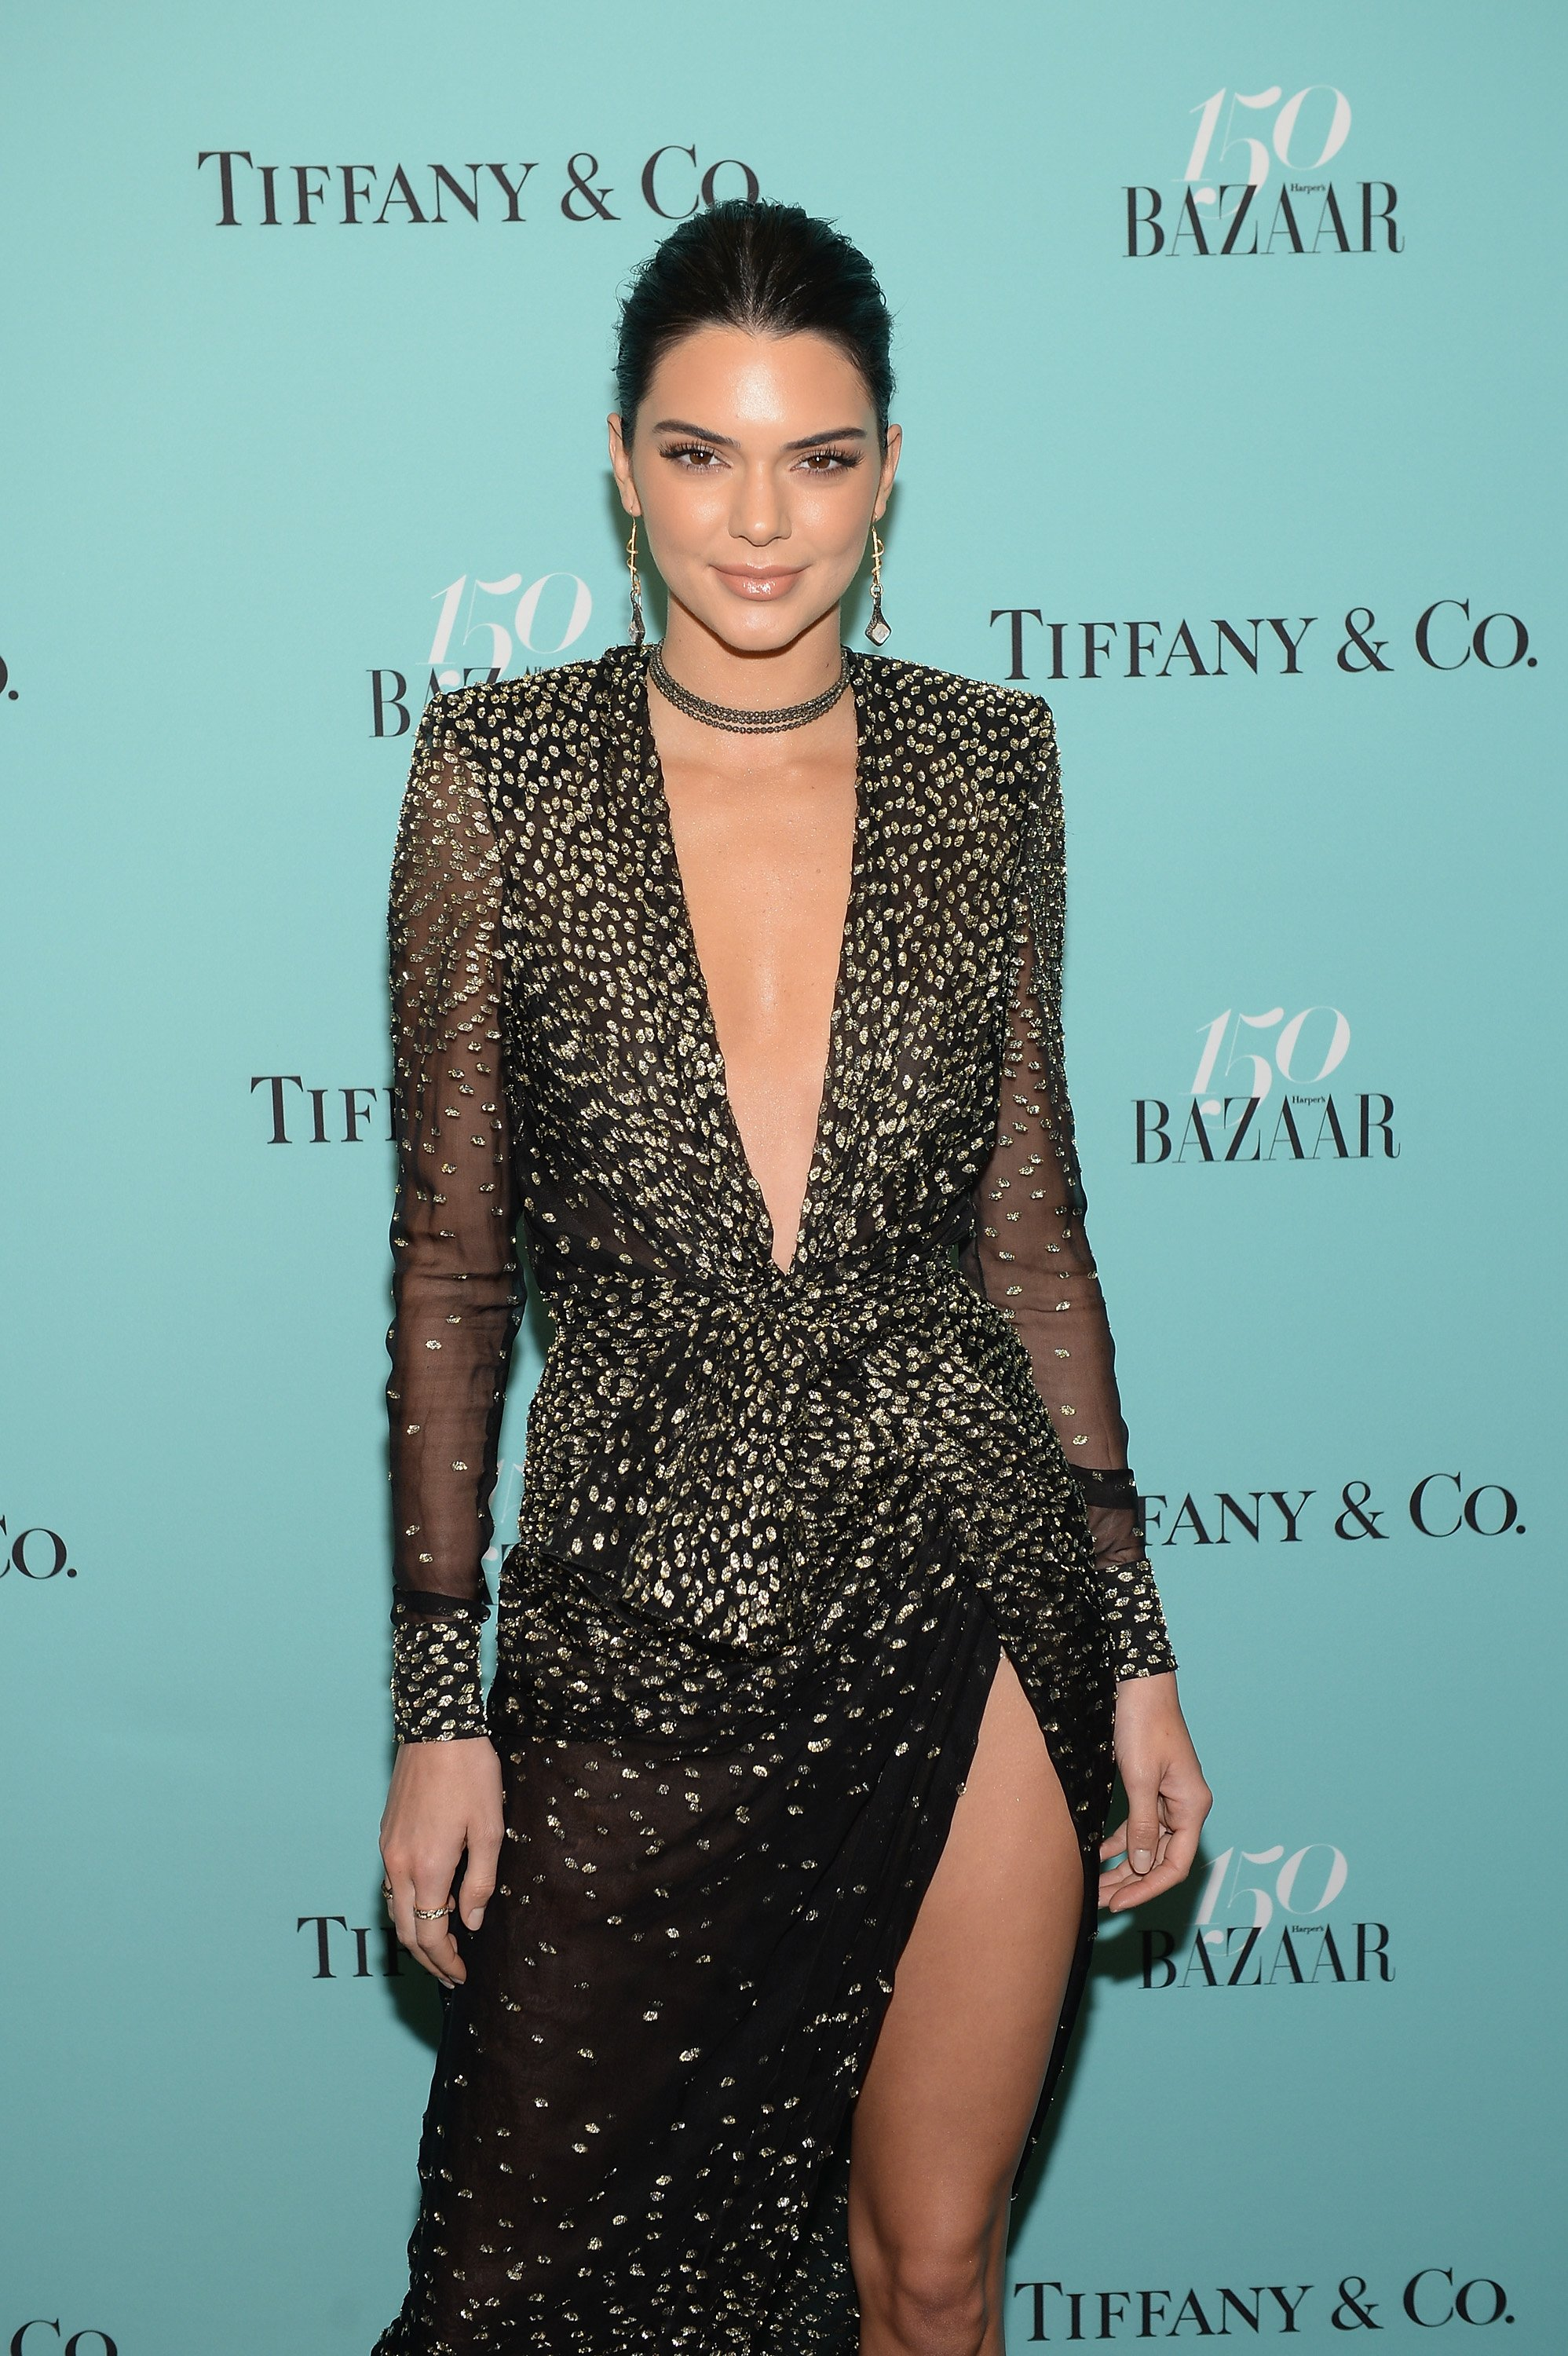 Kendall Jenner at Harper's BAZAAR 150th Anniversary Event presented with Tiffany & Co at The Rainbow Room on April 19, 2017. | Photo: Getty Images